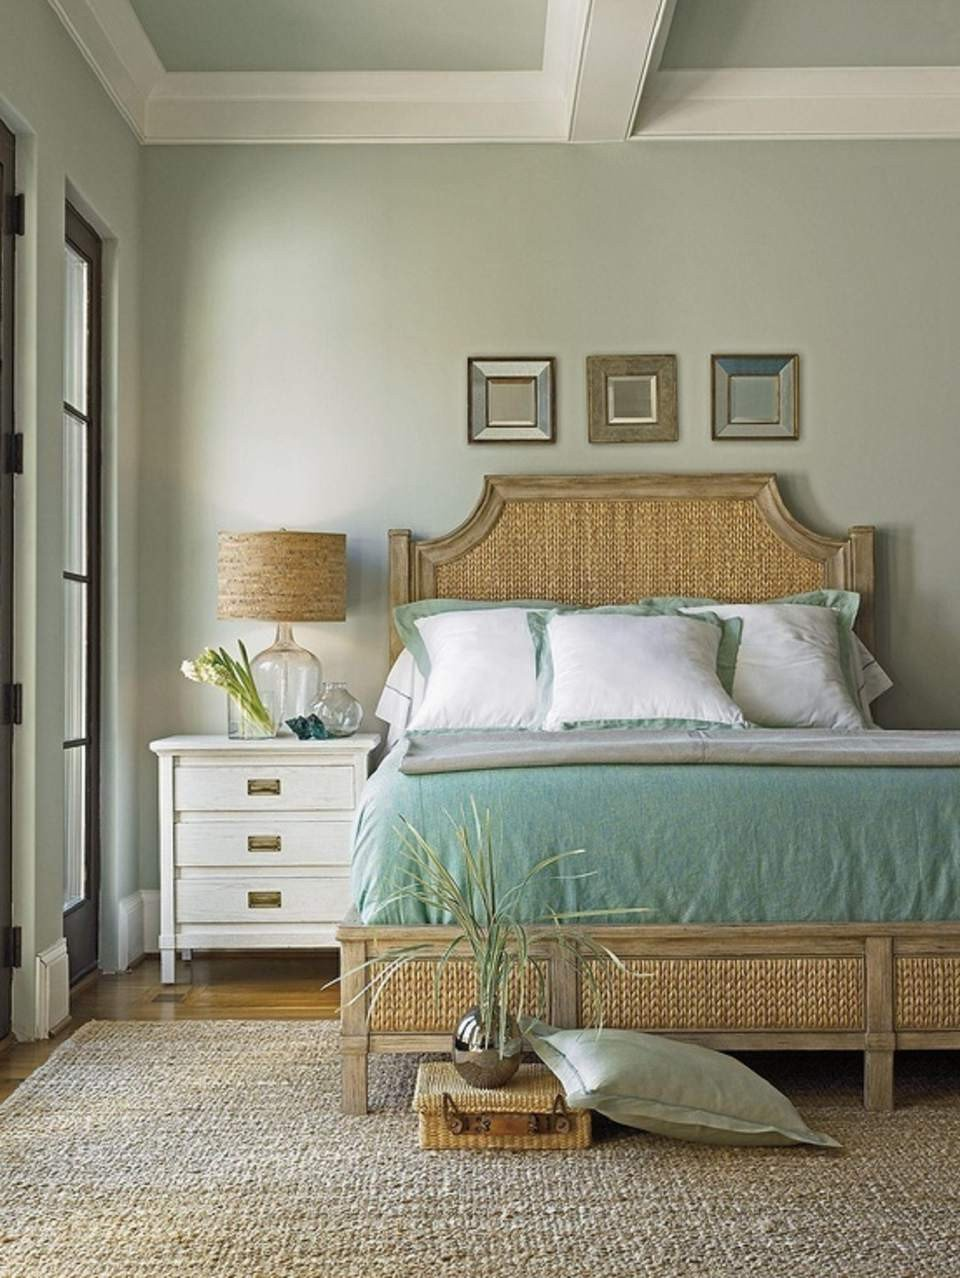 Beach themed Bedroom Furniture Unique 50 Gorgeous Beach Bedroom Decor Ideas